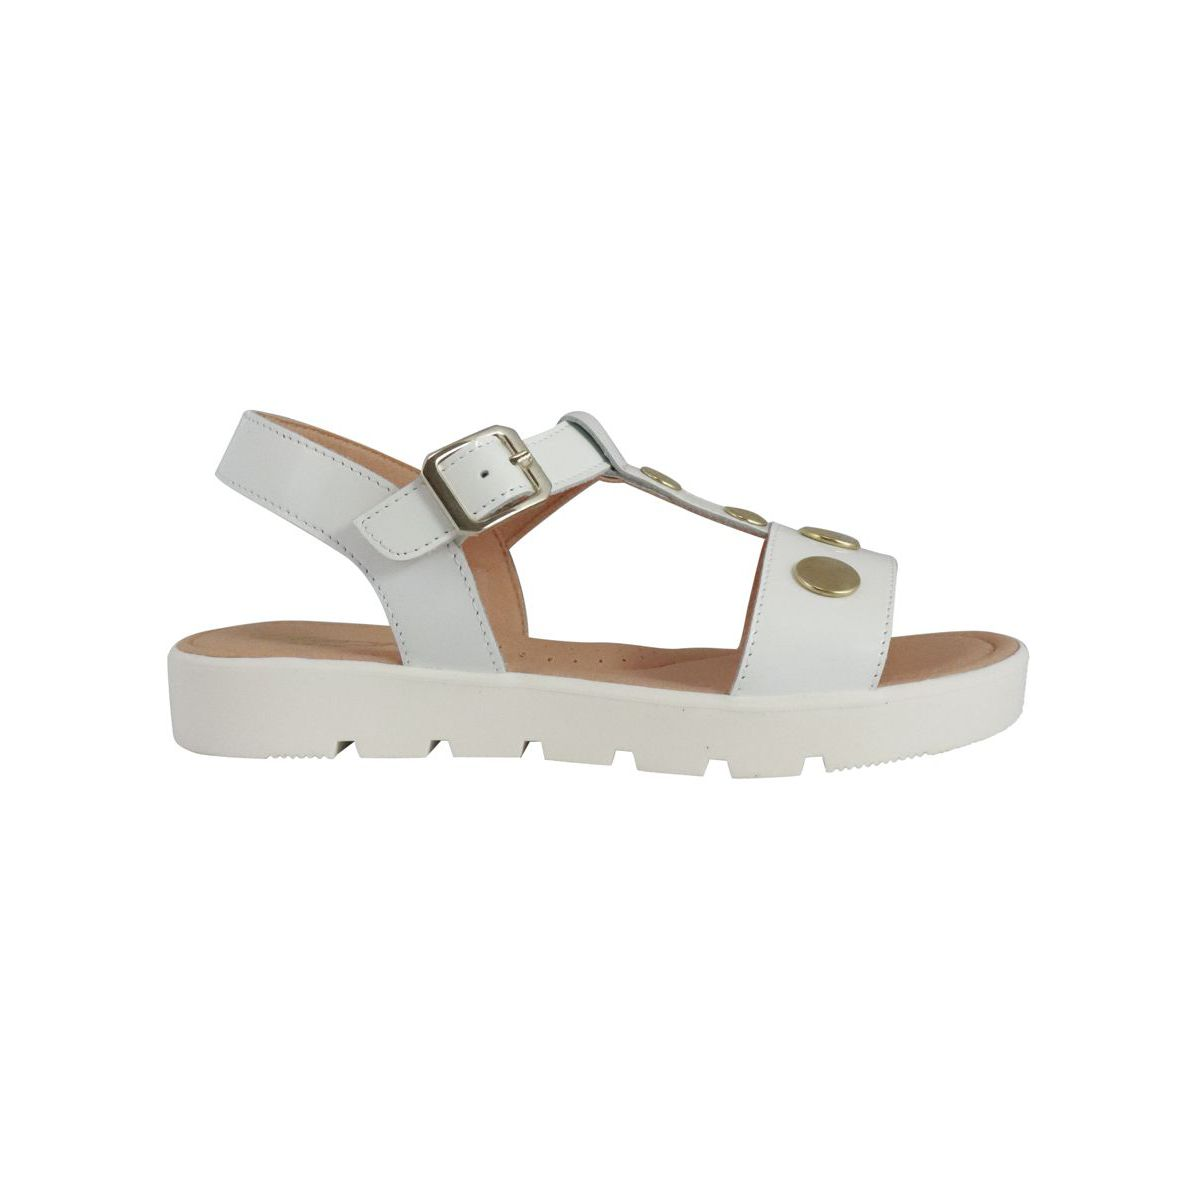 1. Clarys sandal in leather with golden studs White Clarys